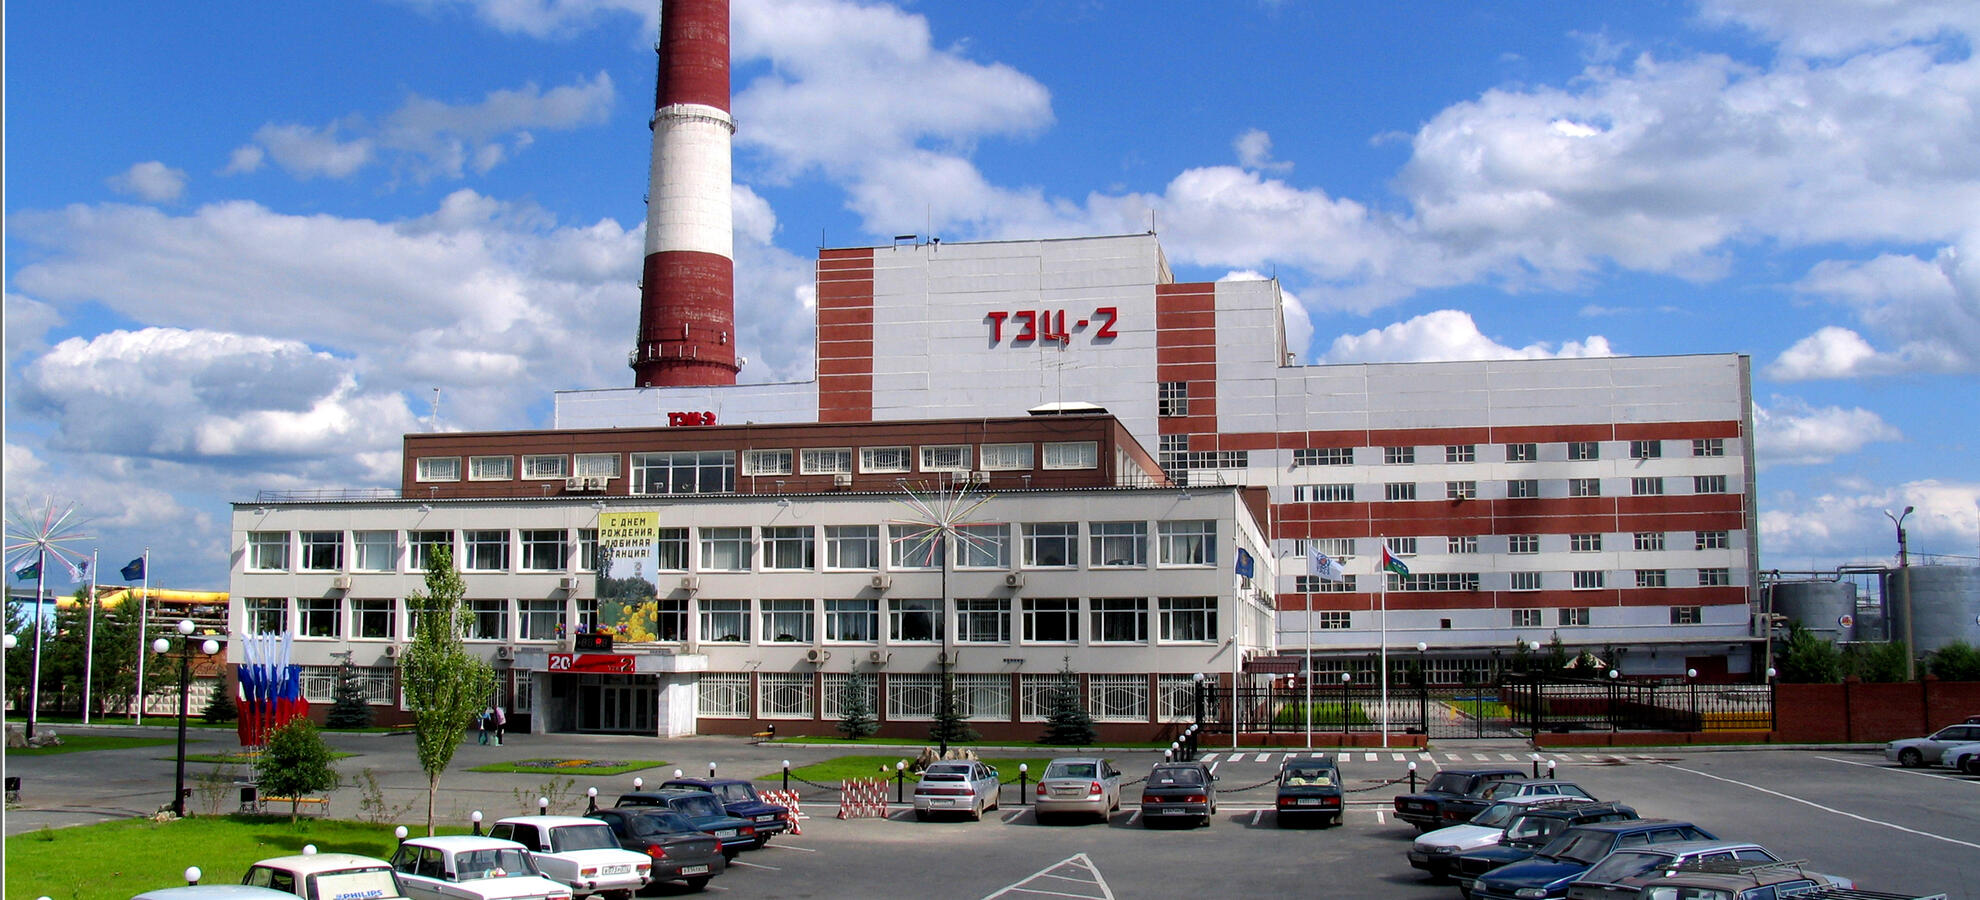 Several ways to get from Tyumen to Chelyabinsk